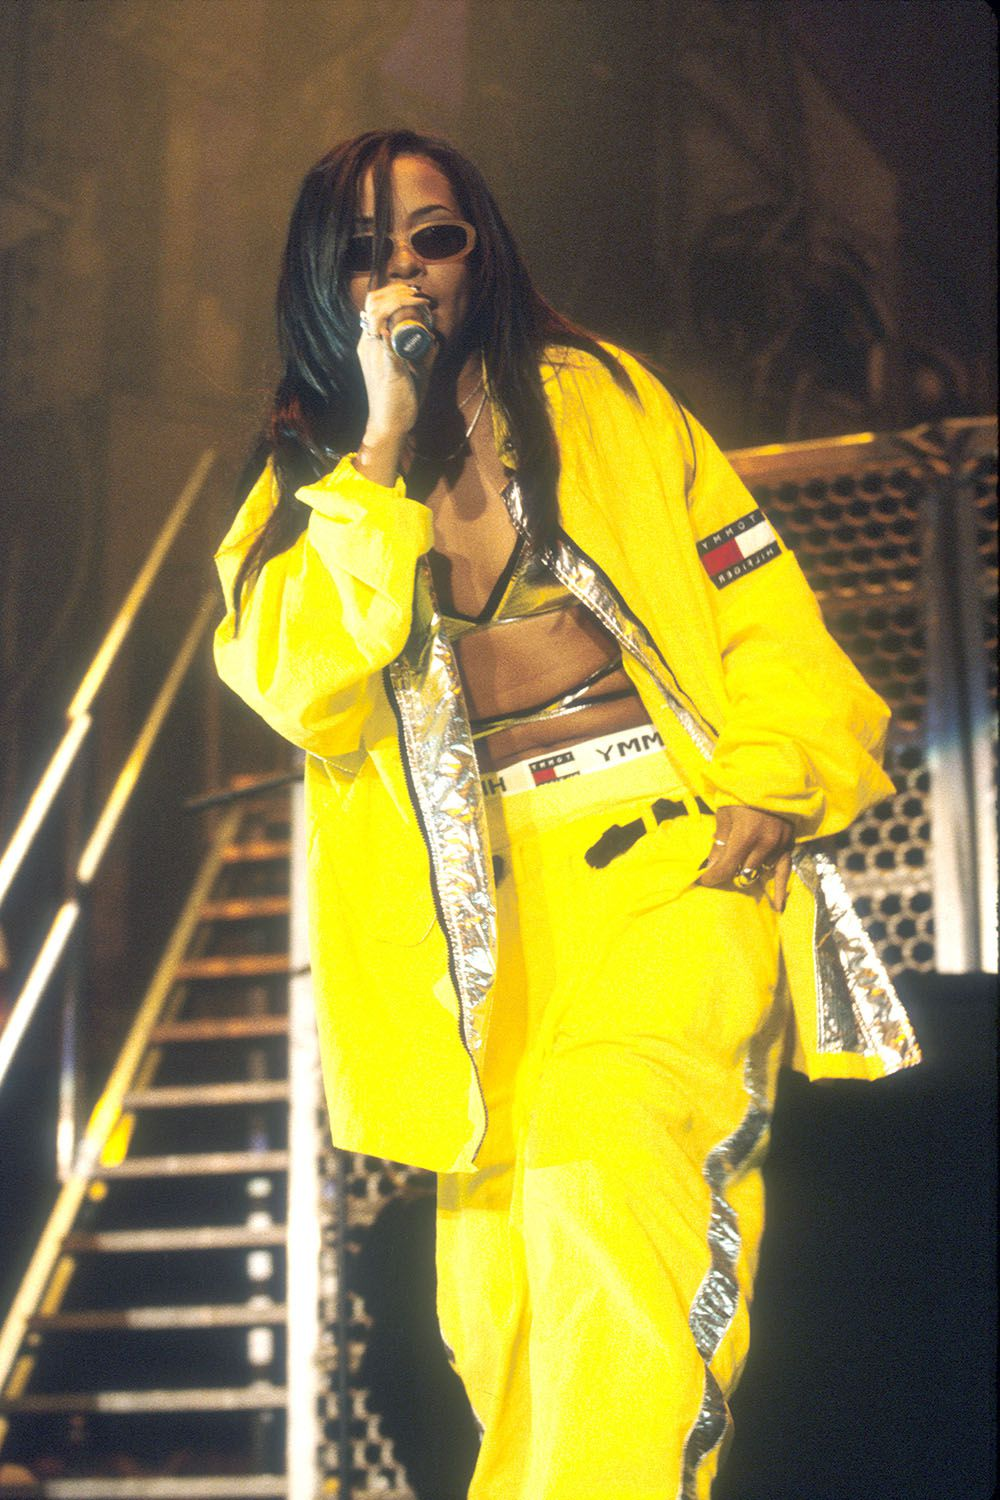 hbz-aaliyah-best-looks-gettyimages-111226388.jpg